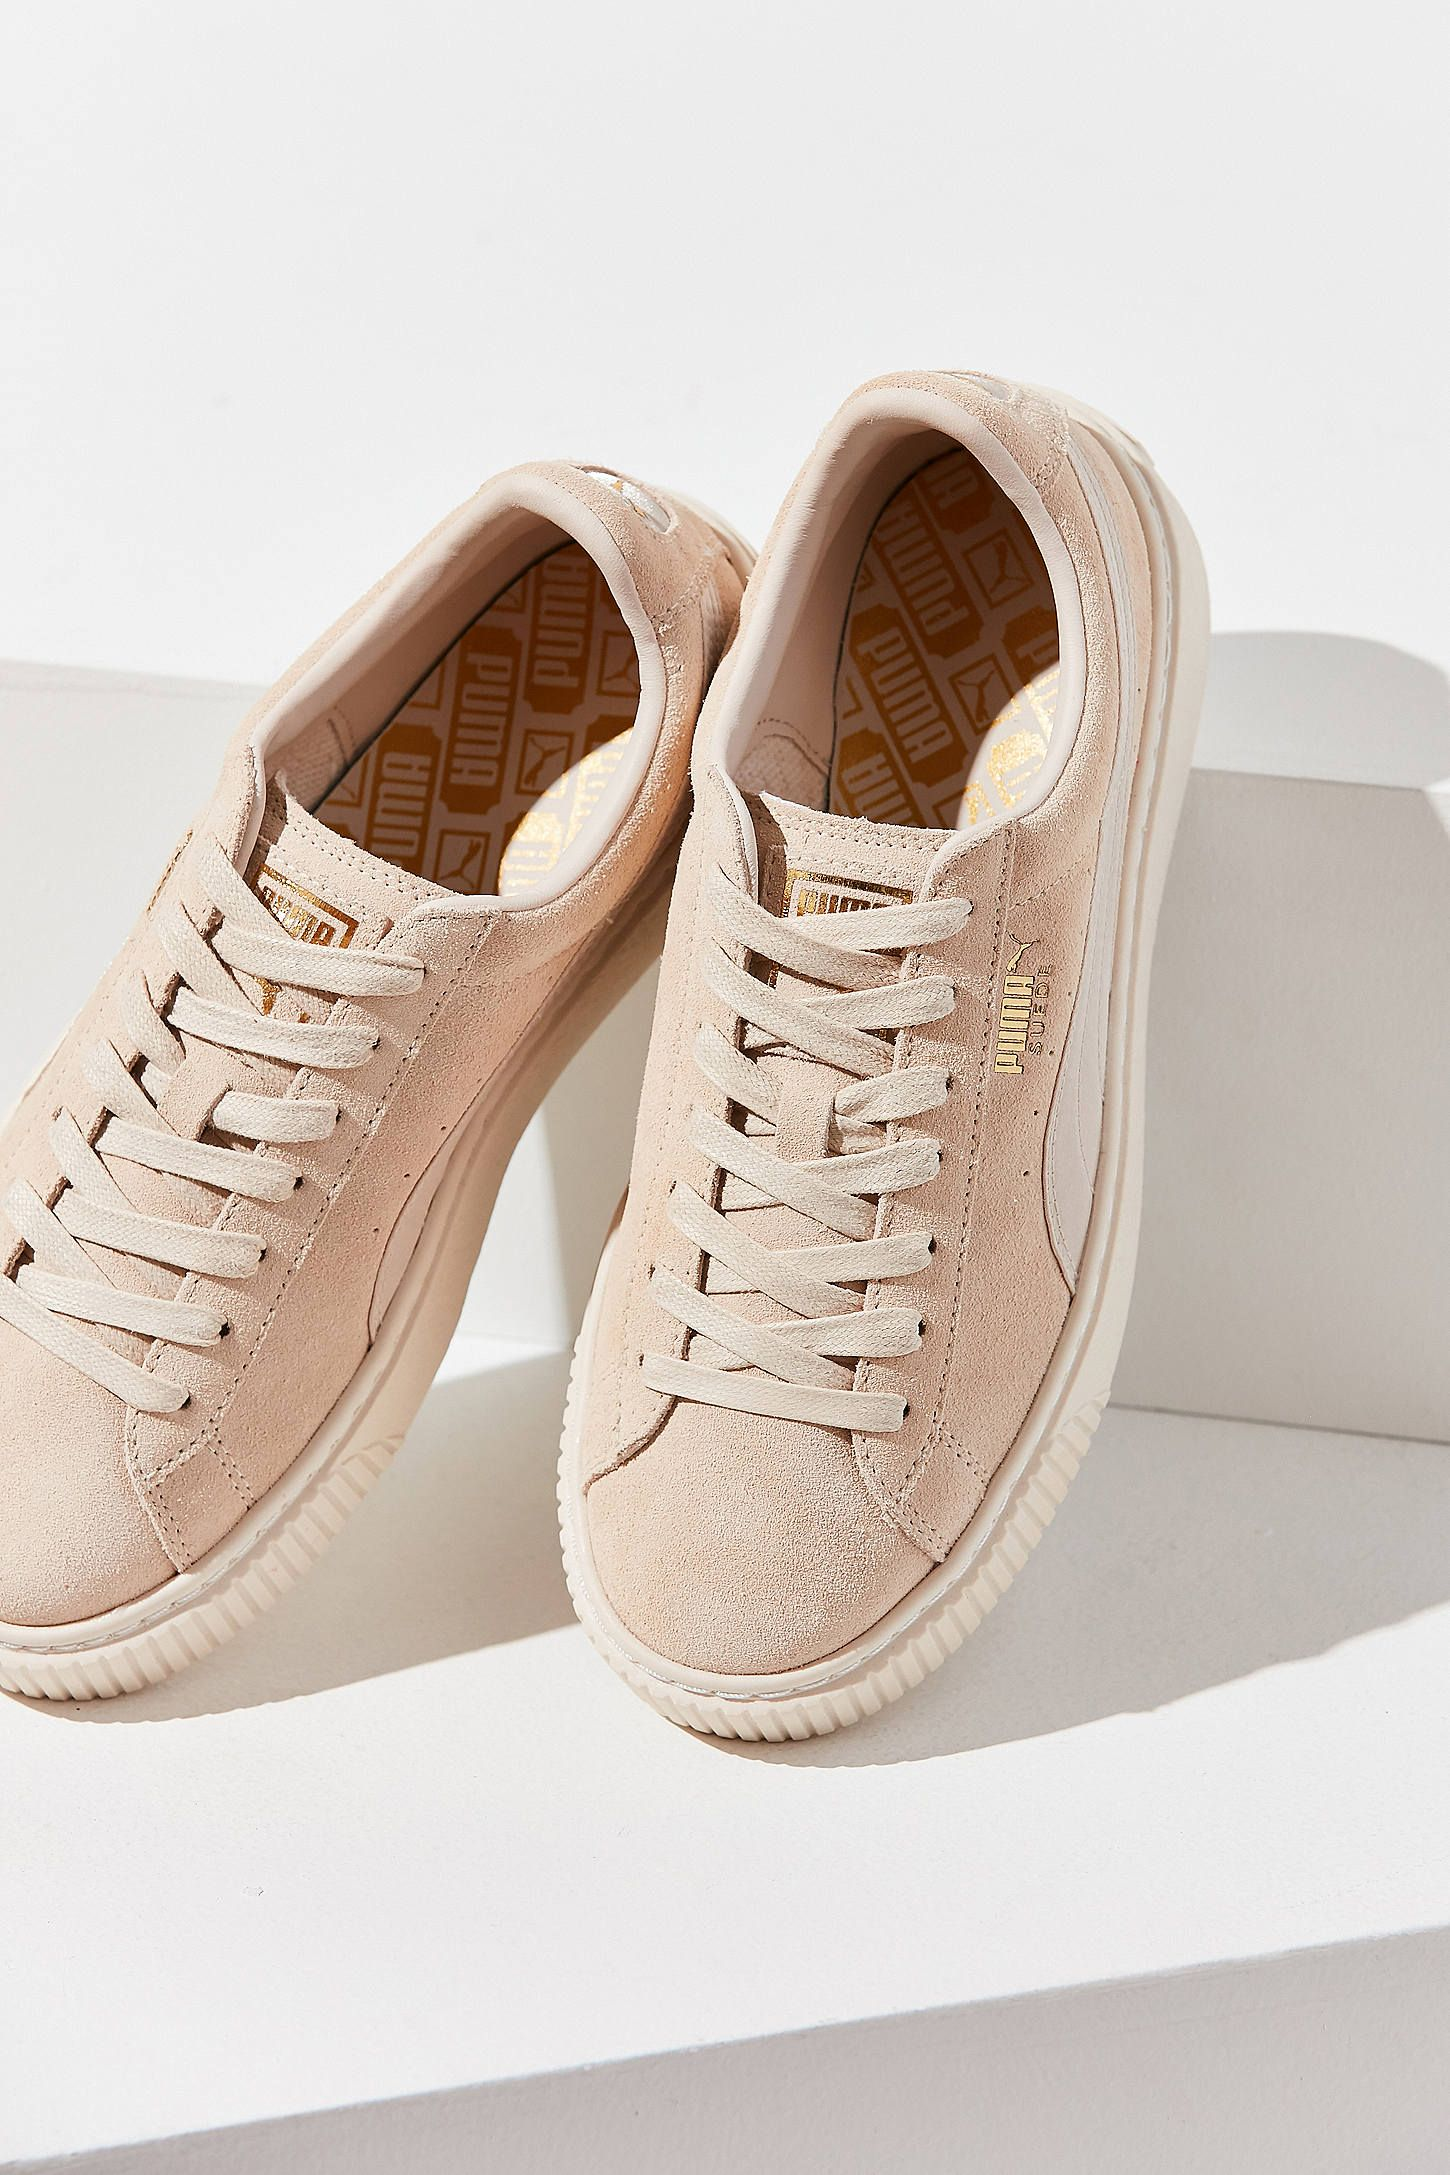 469c98f248d Shop Puma Suede Summer Satin Platform Sneaker at Urban Outfitters ...